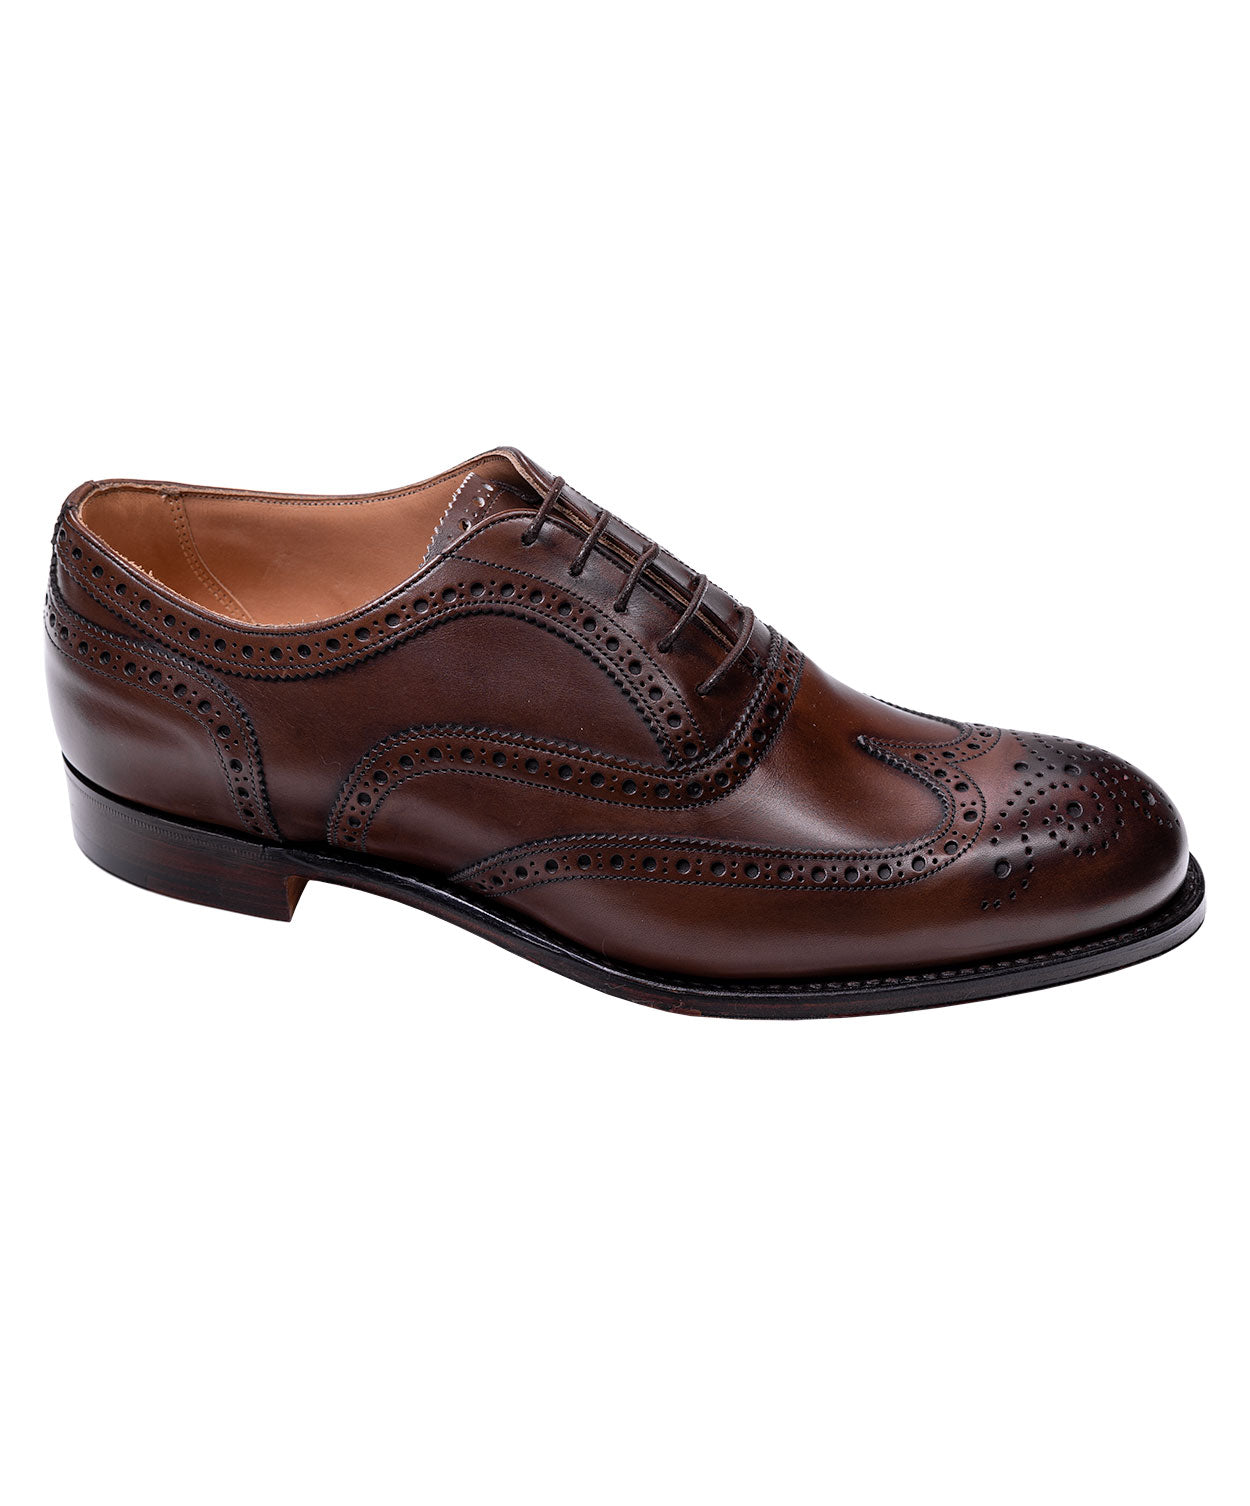 Arthur III 125 Burnished Mocha